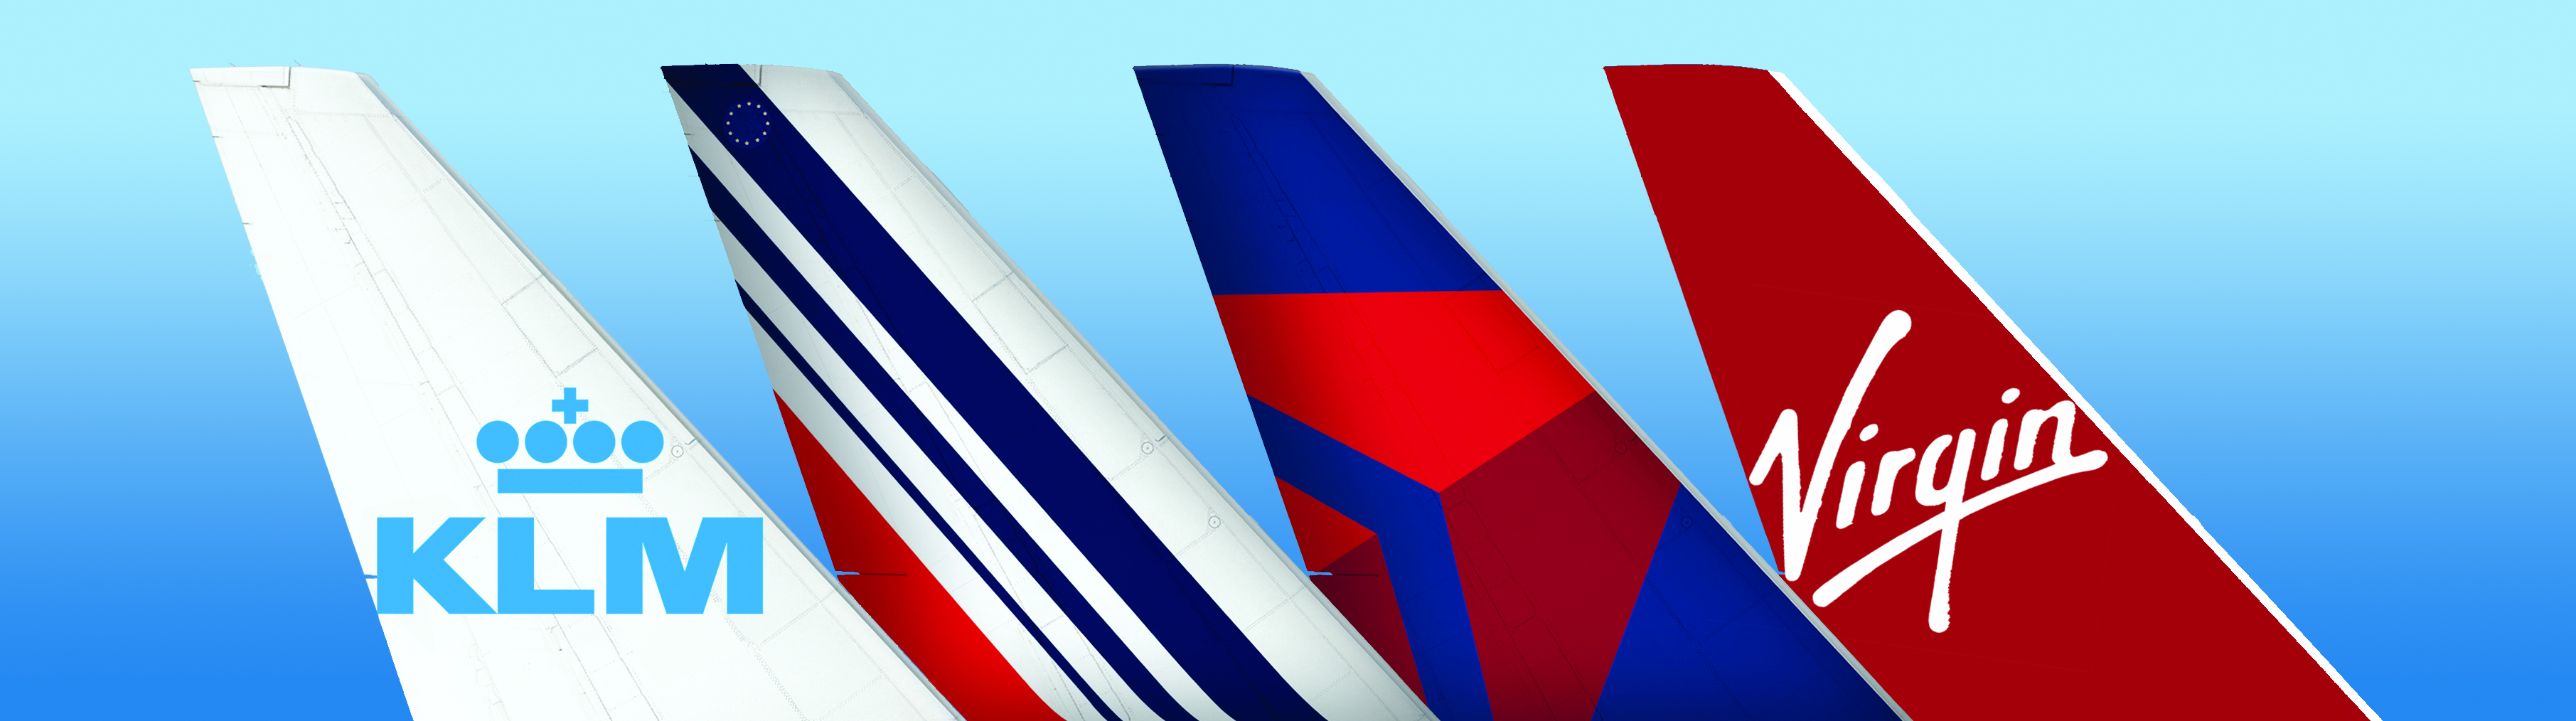 Airplane tails - KLM, Air France, Delta, Virgin Atlantic